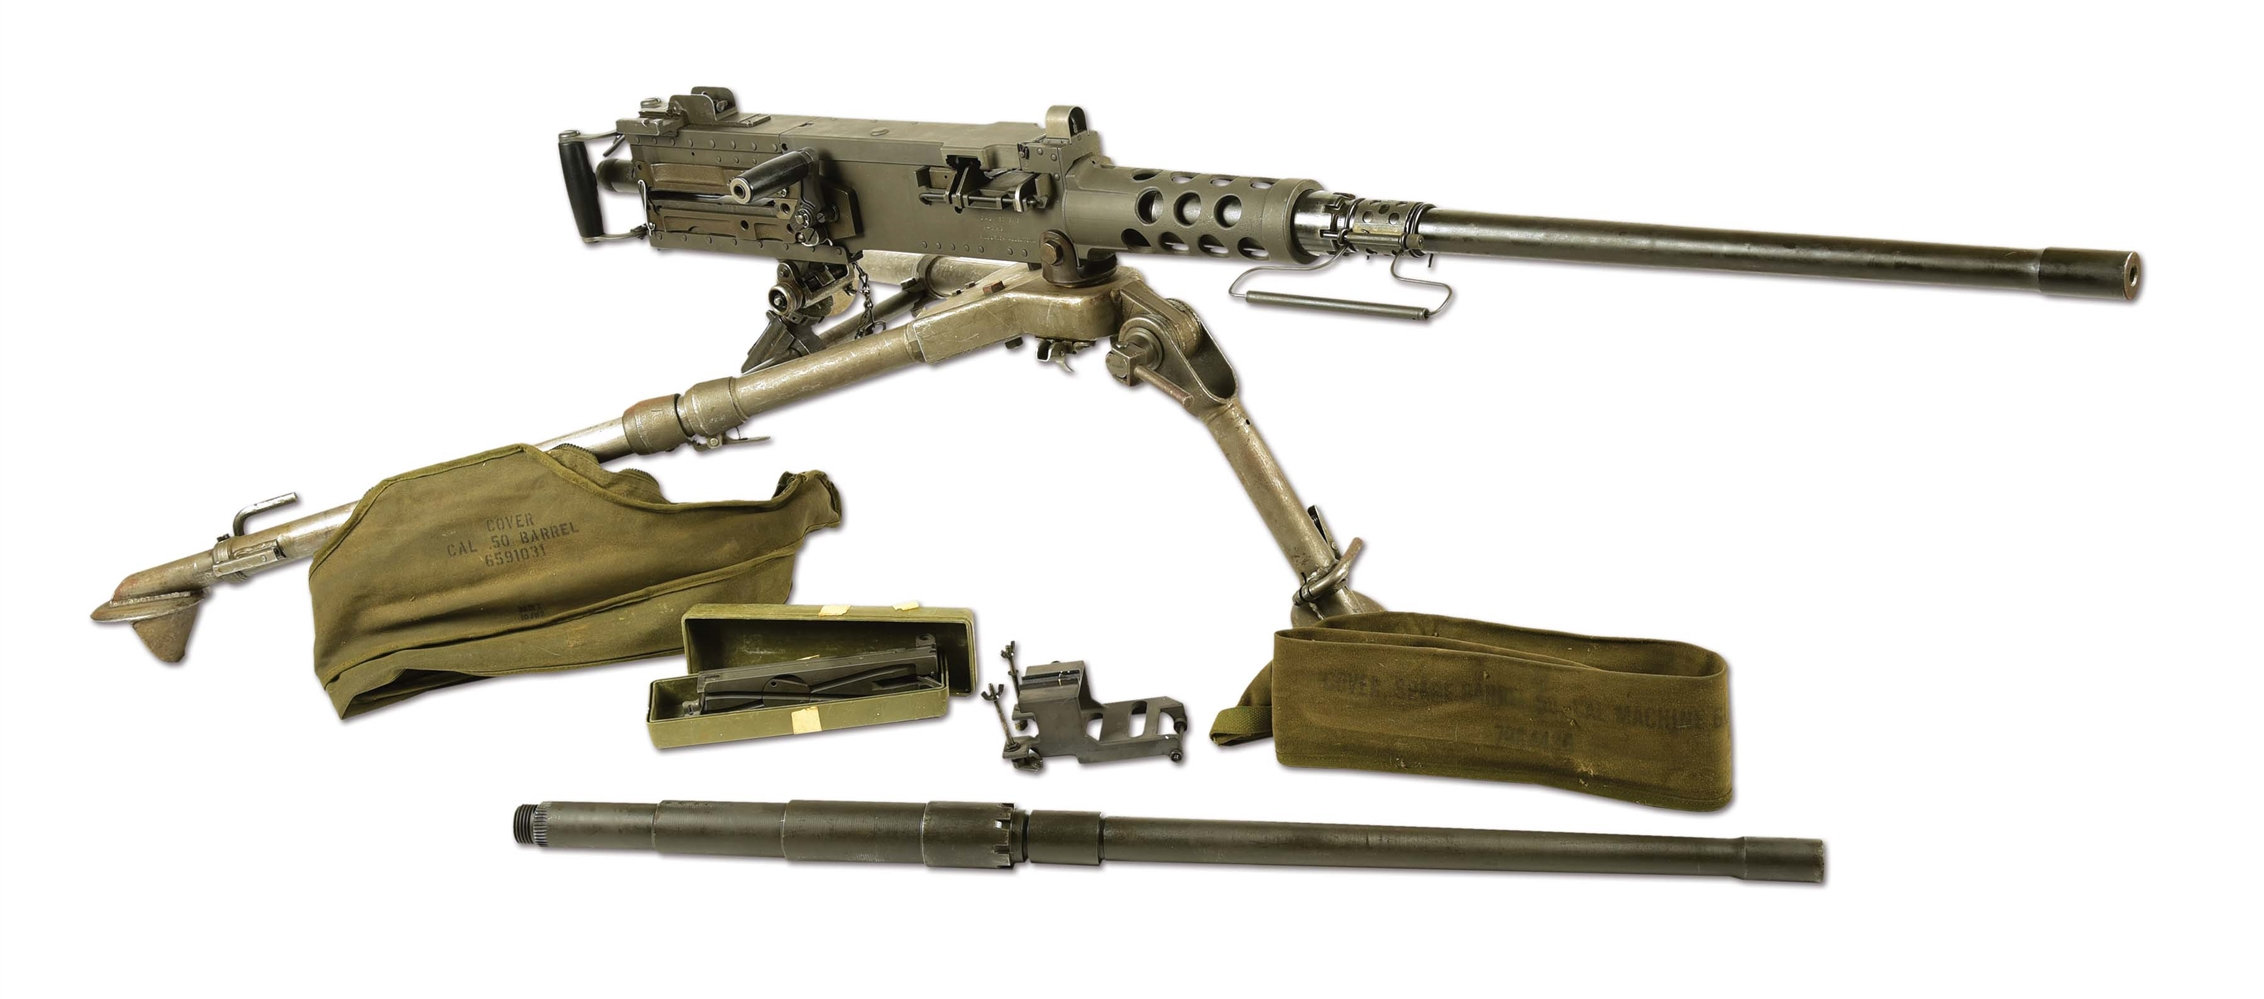 (N) NEAR MINT URICH SIDEPLATE BROWNING M2 .50 CALIBER MACHINE GUN ON GROUND TRIPOD (FULLY TRANSFERABLE).